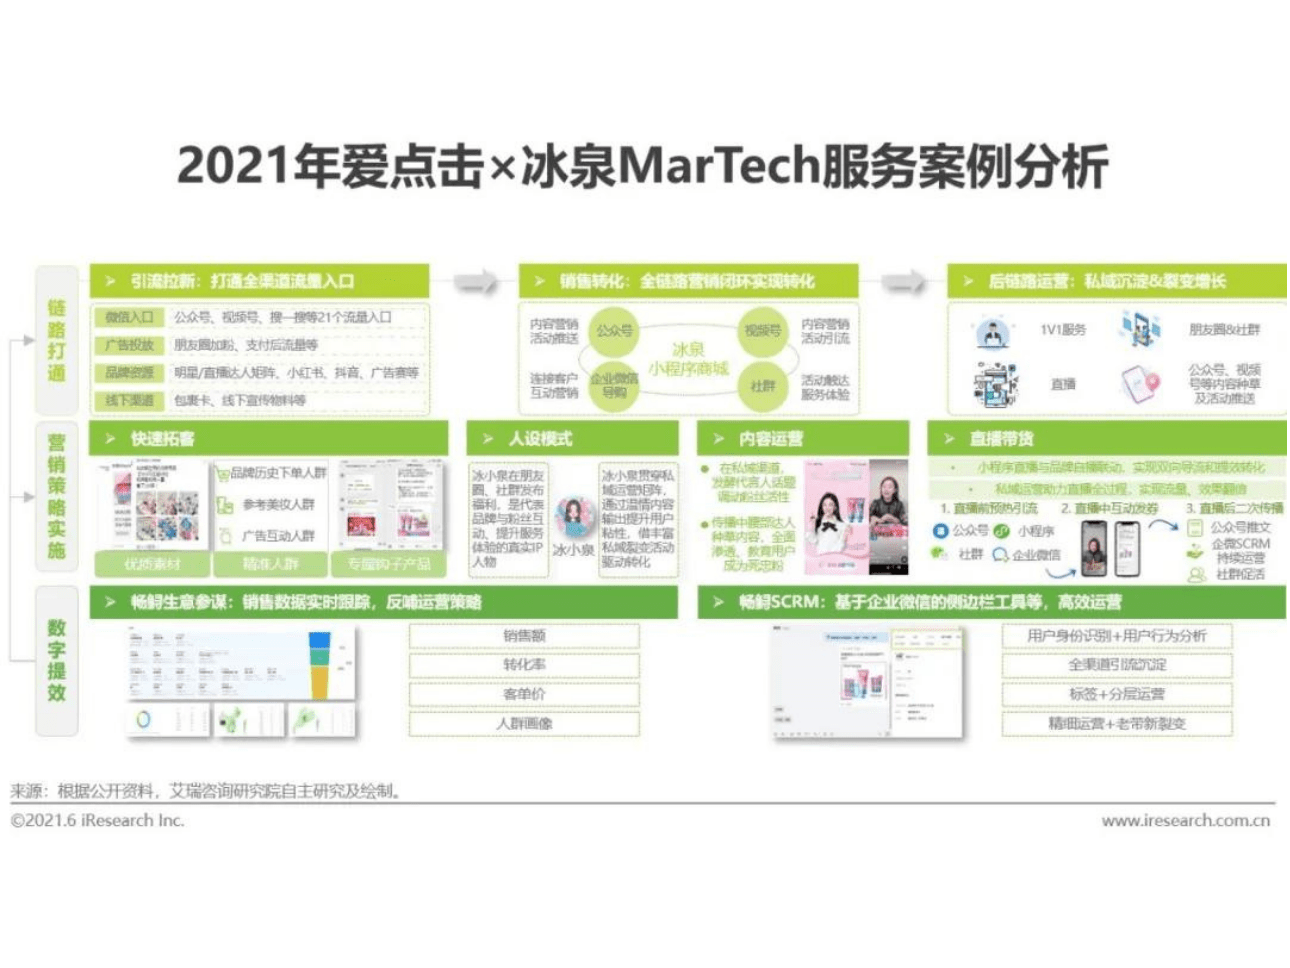 iClick has been crowned as one of the top Martech players in 2021 China's iResearch MarTech Market Report